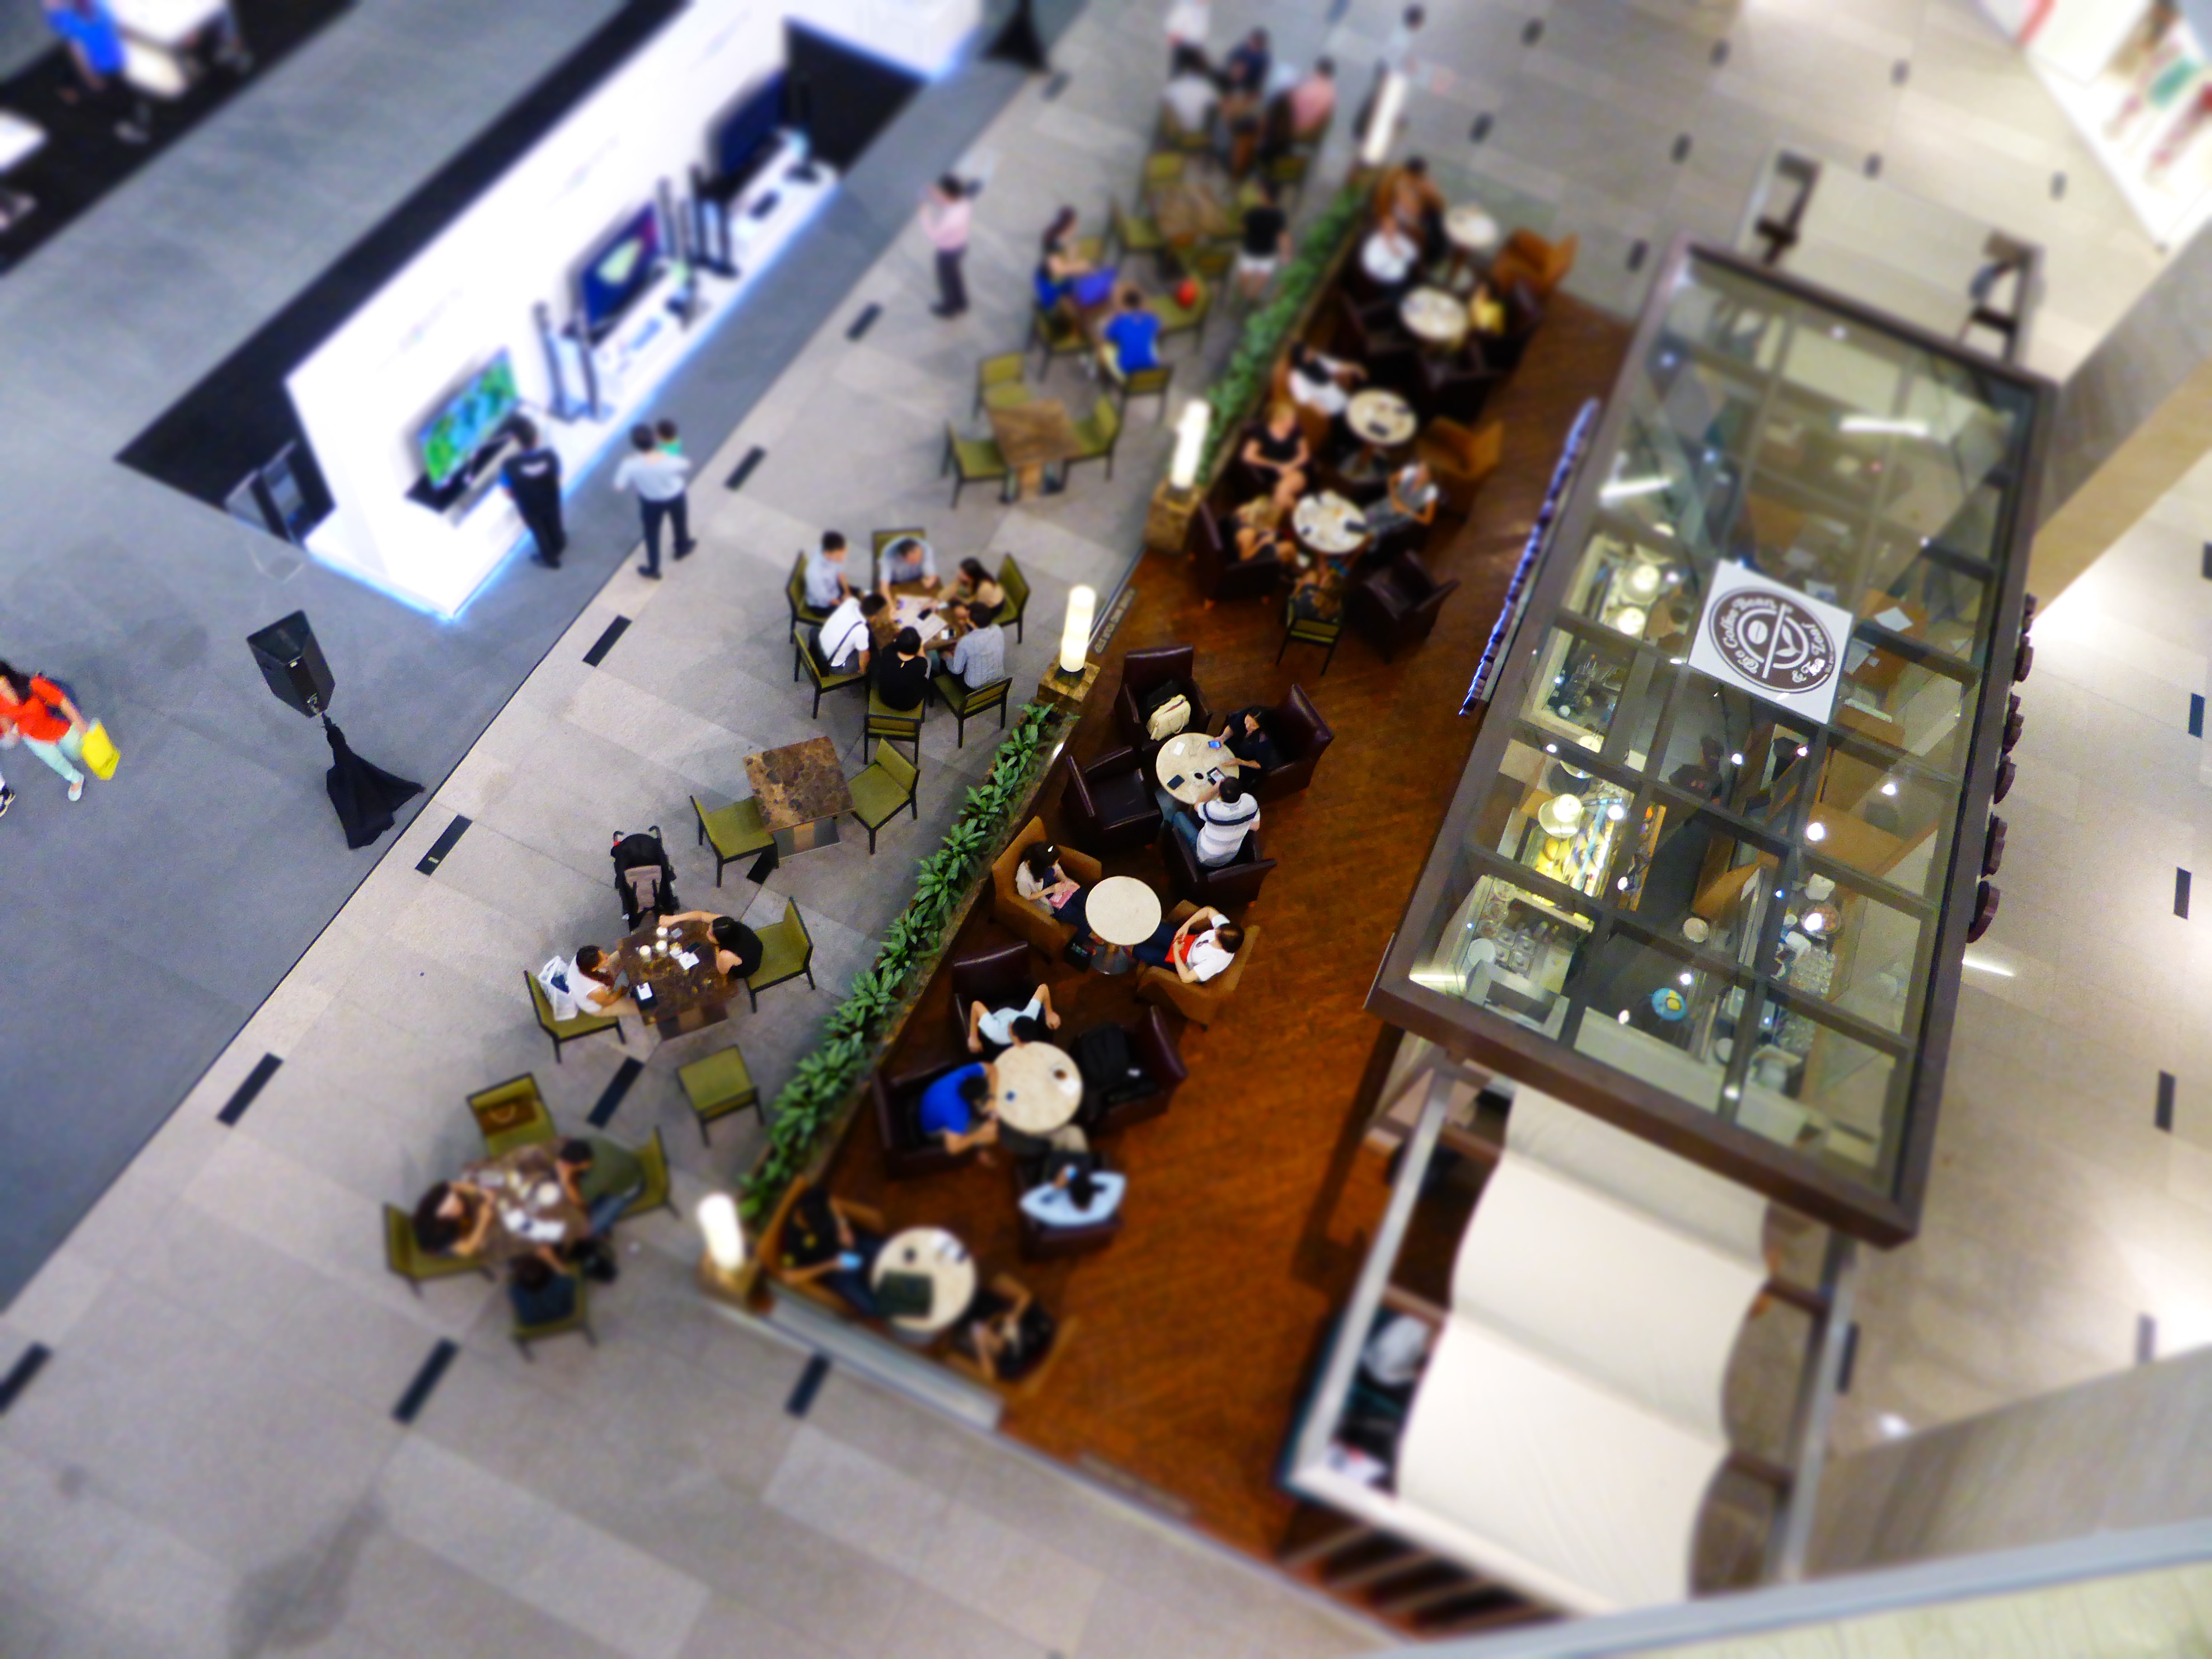 An overhead shot of people at a table in a shopping mall cafeteria